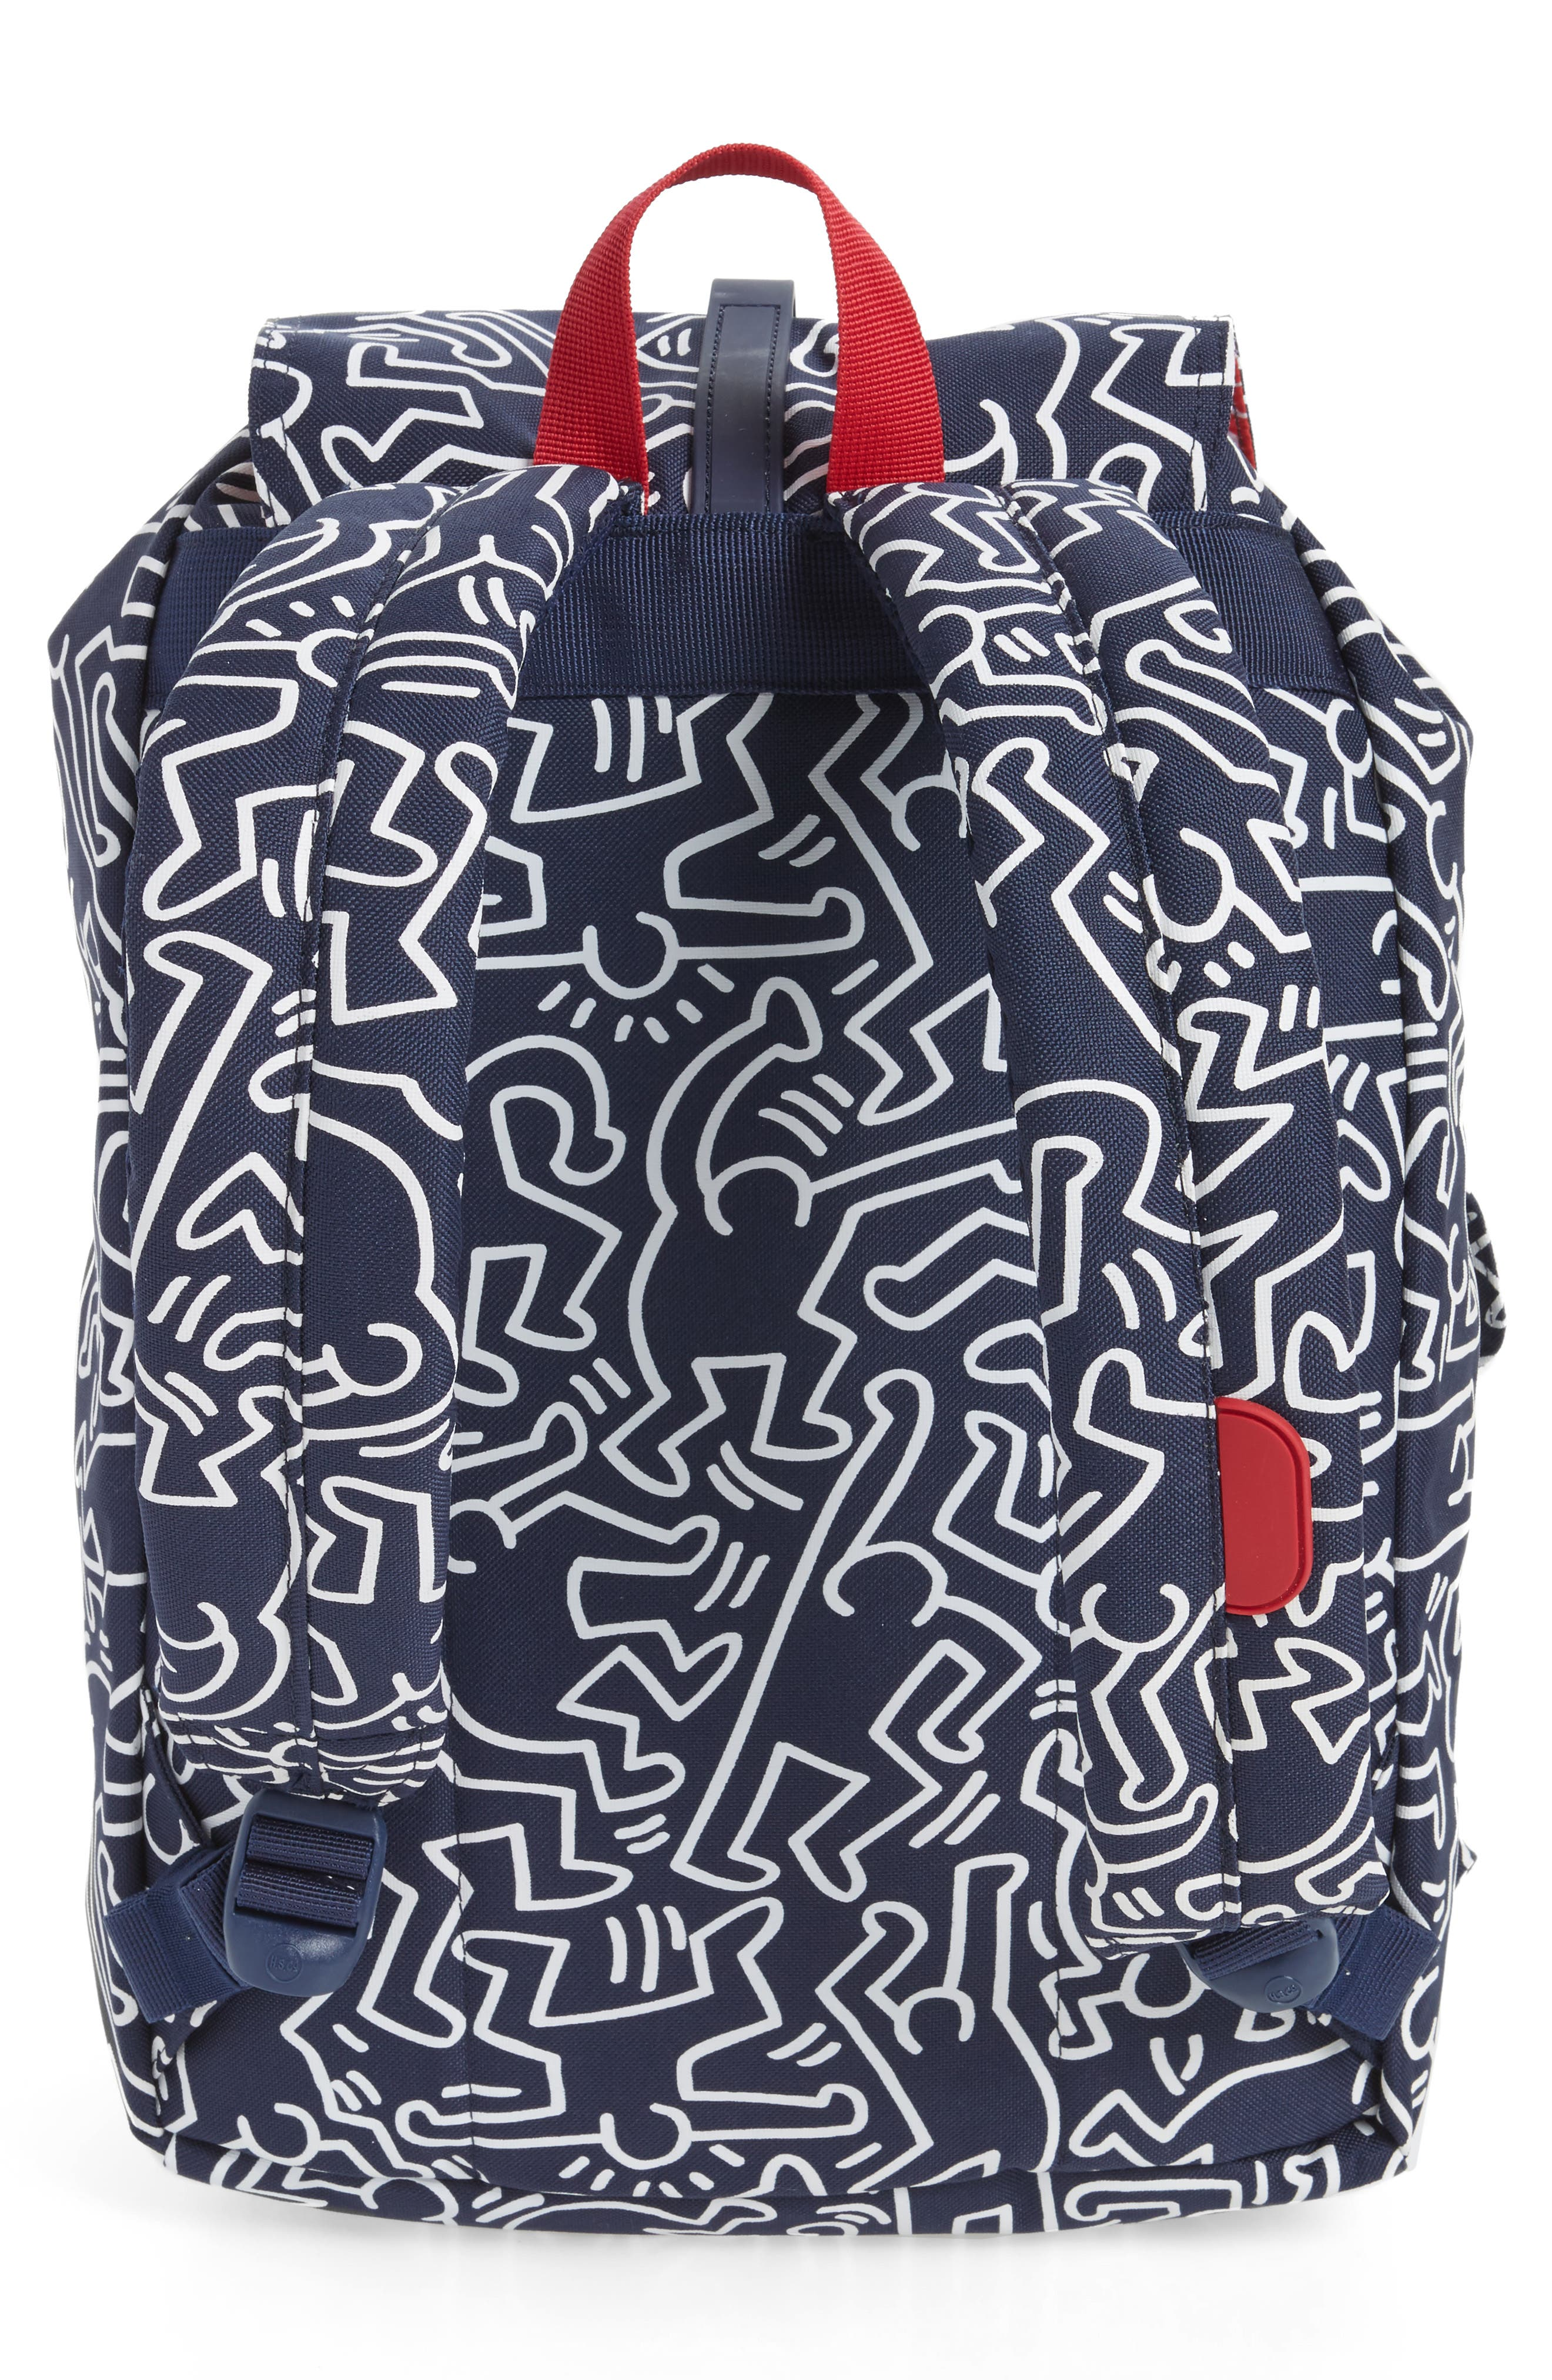 Dawson Keith Haring Backpack,                             Alternate thumbnail 3, color,                             477